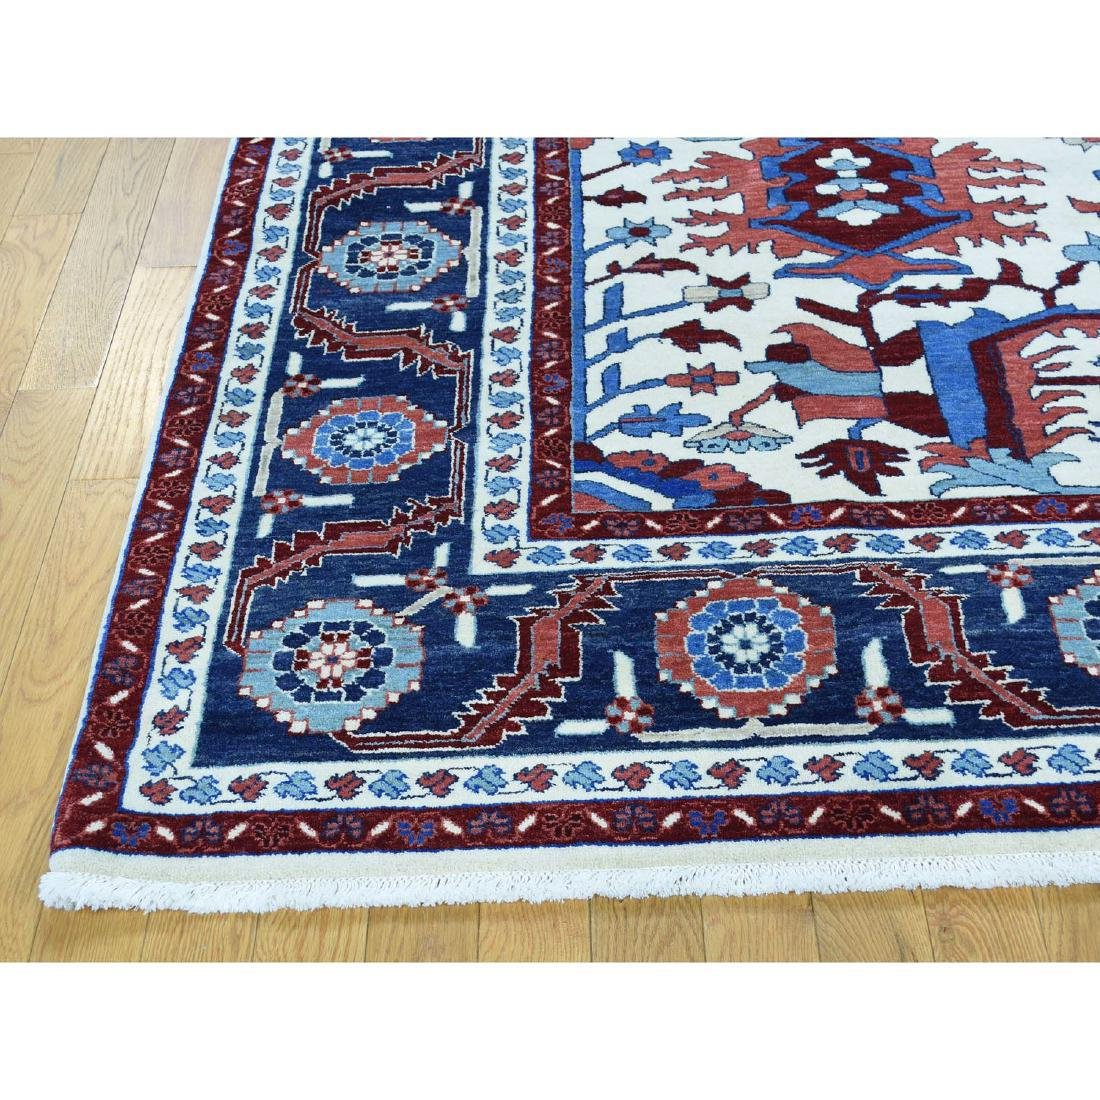 Thick Heriz Hand Knotted Pure Wool Rug 8.4x10.1 - 5